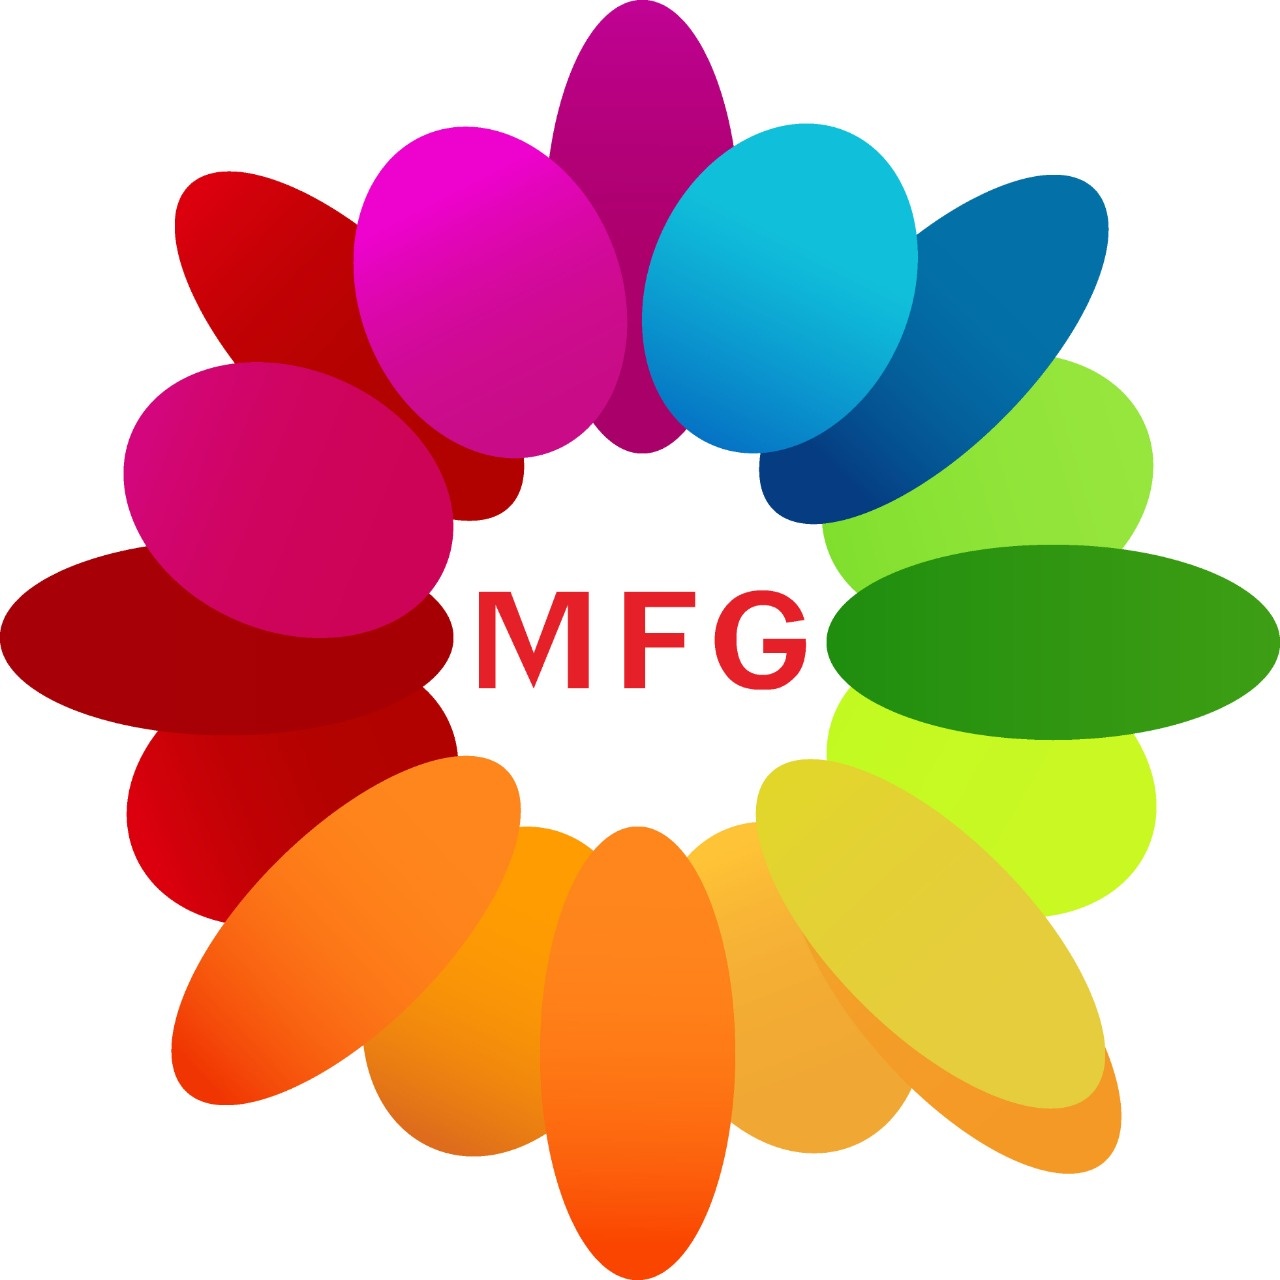 Bunch of 6 orchids with 5 pcs of kit kat